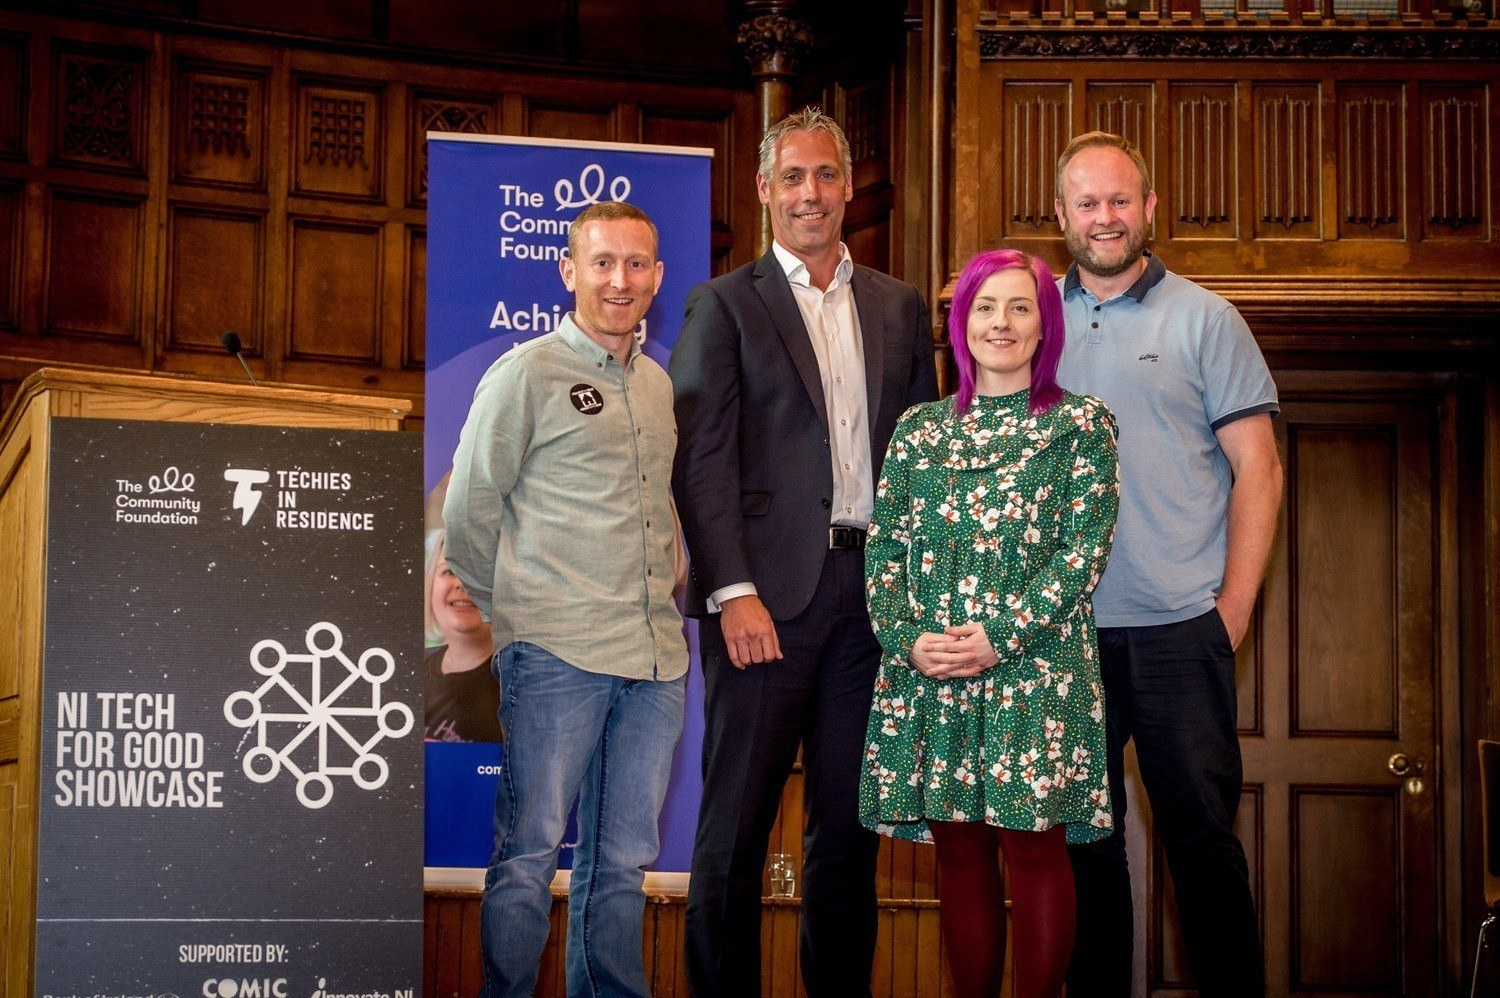 Techies in Residence Pitch for £25,000 Seed Fund